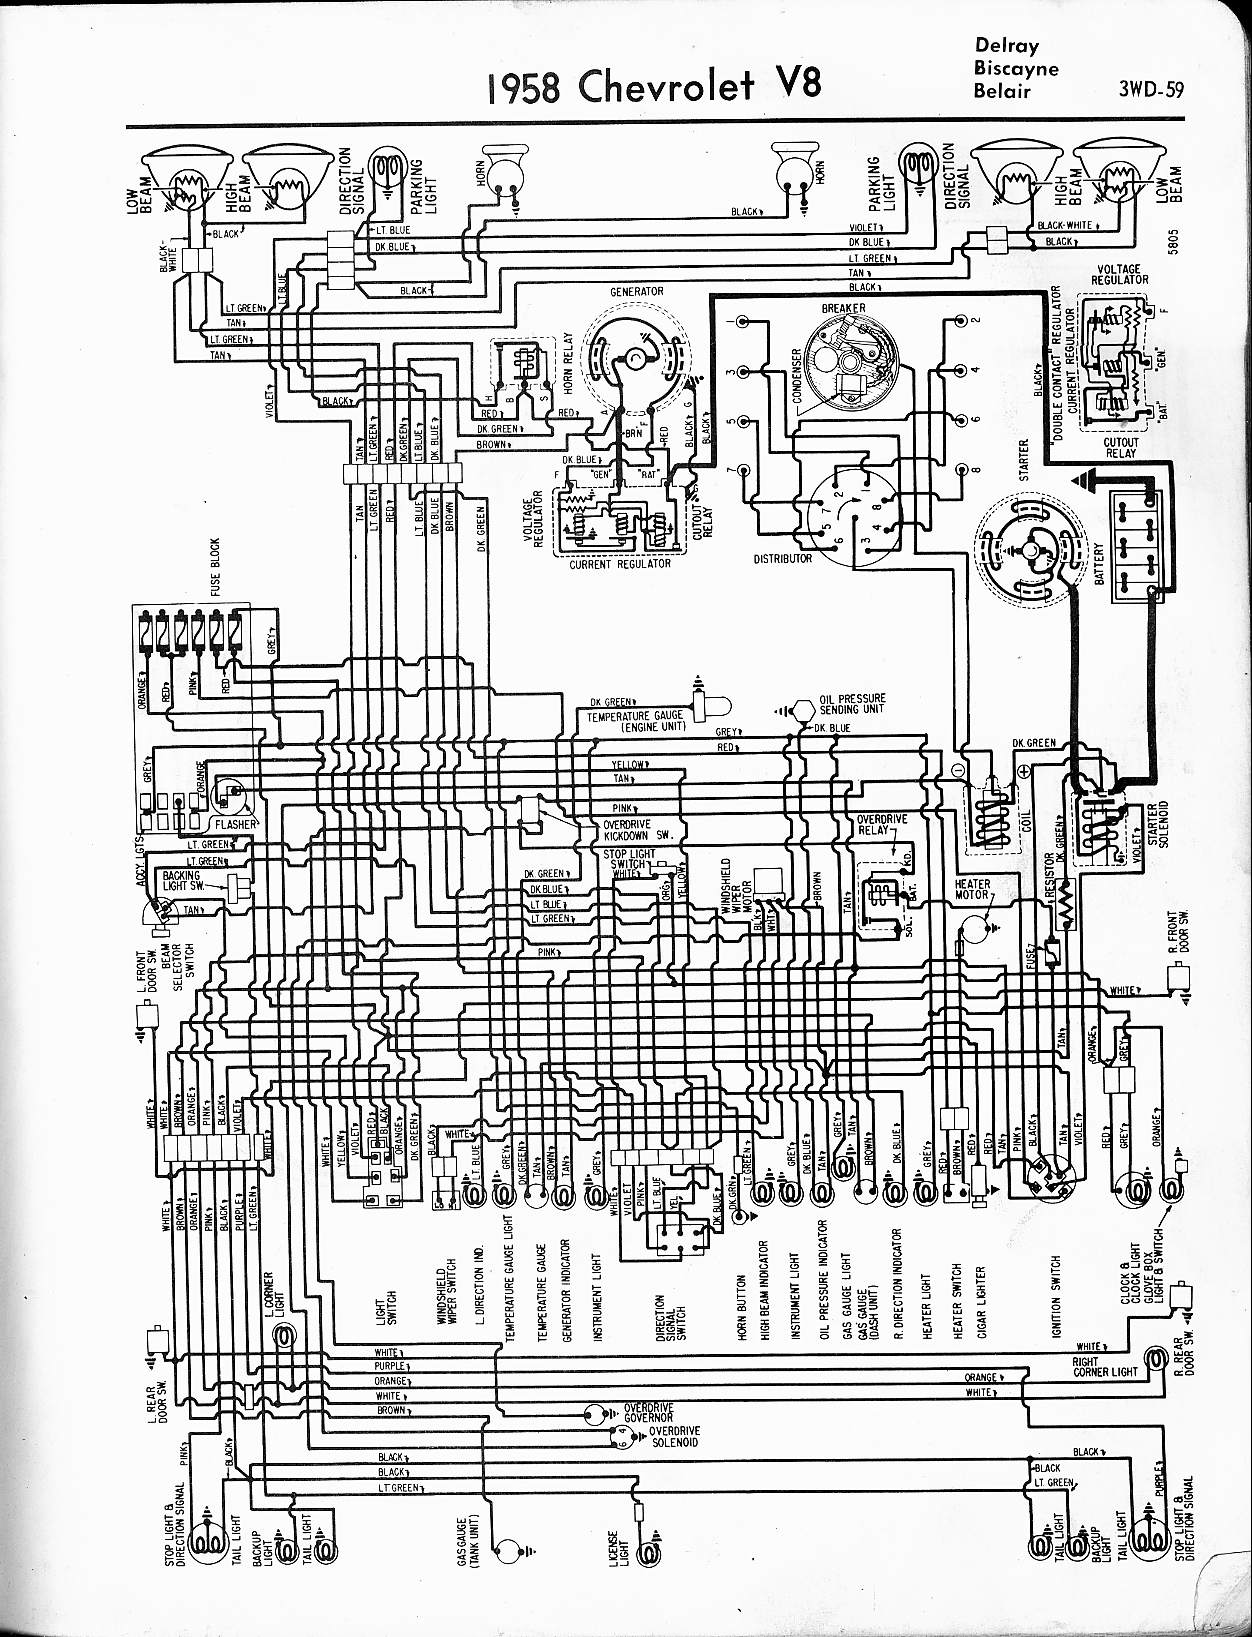 MWireChev58_3WD 059 57 65 chevy wiring diagrams 1960 chevy impala wiring diagram at crackthecode.co